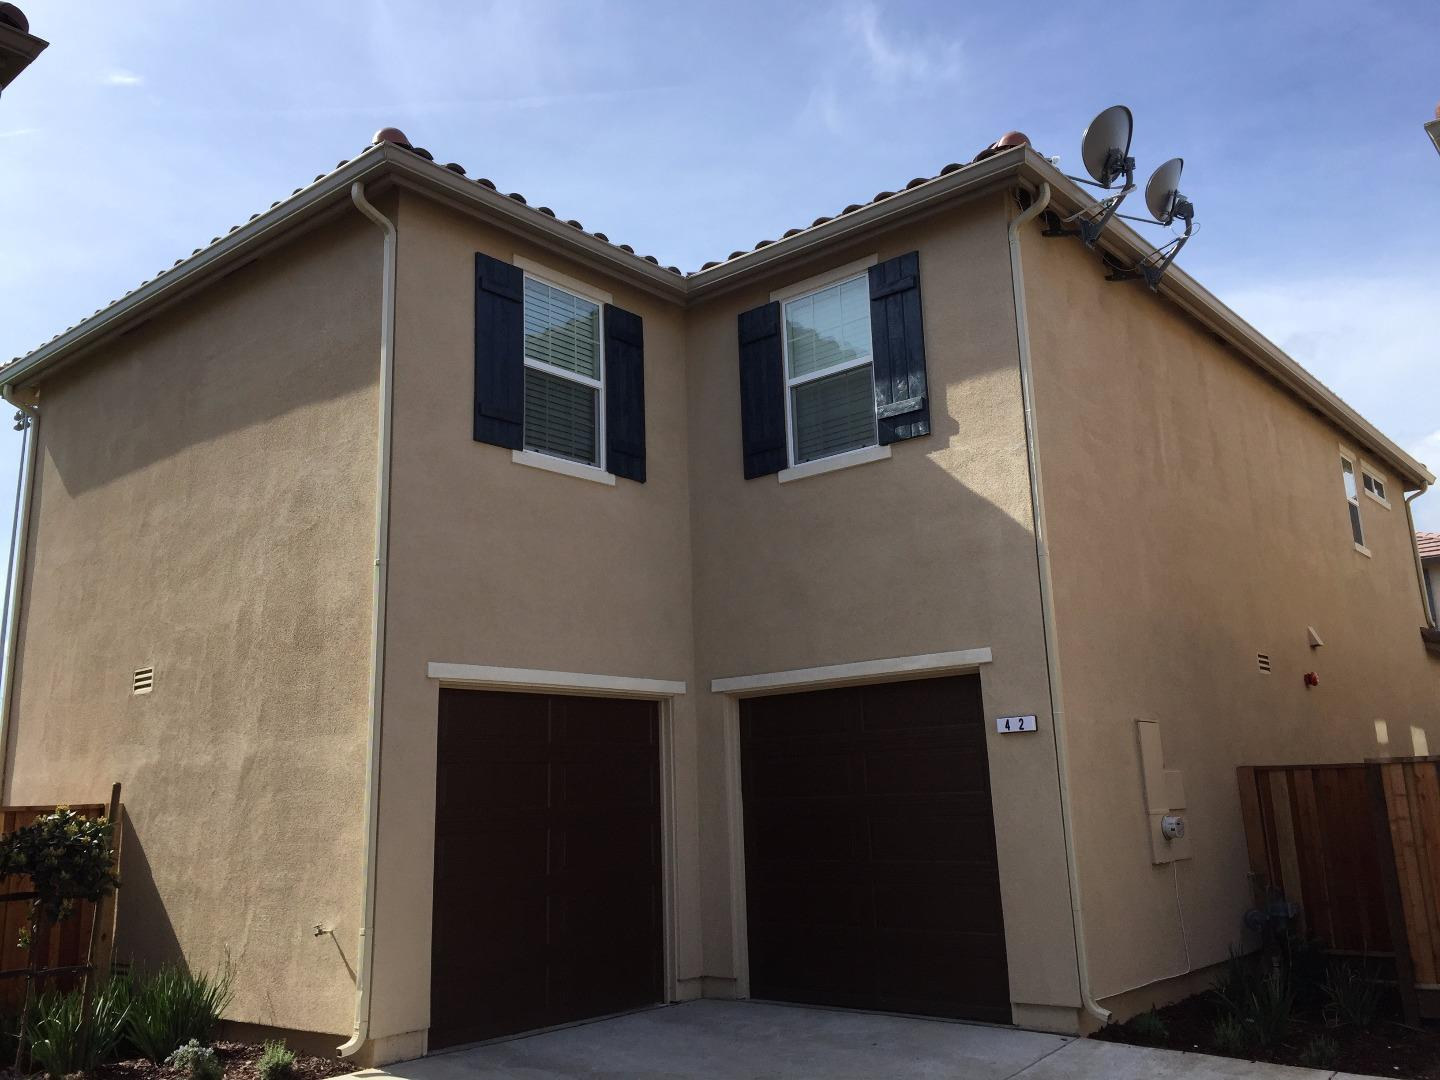 Additional photo for property listing at 42 Caspian Way  Gilroy, Kalifornien 95020 Vereinigte Staaten